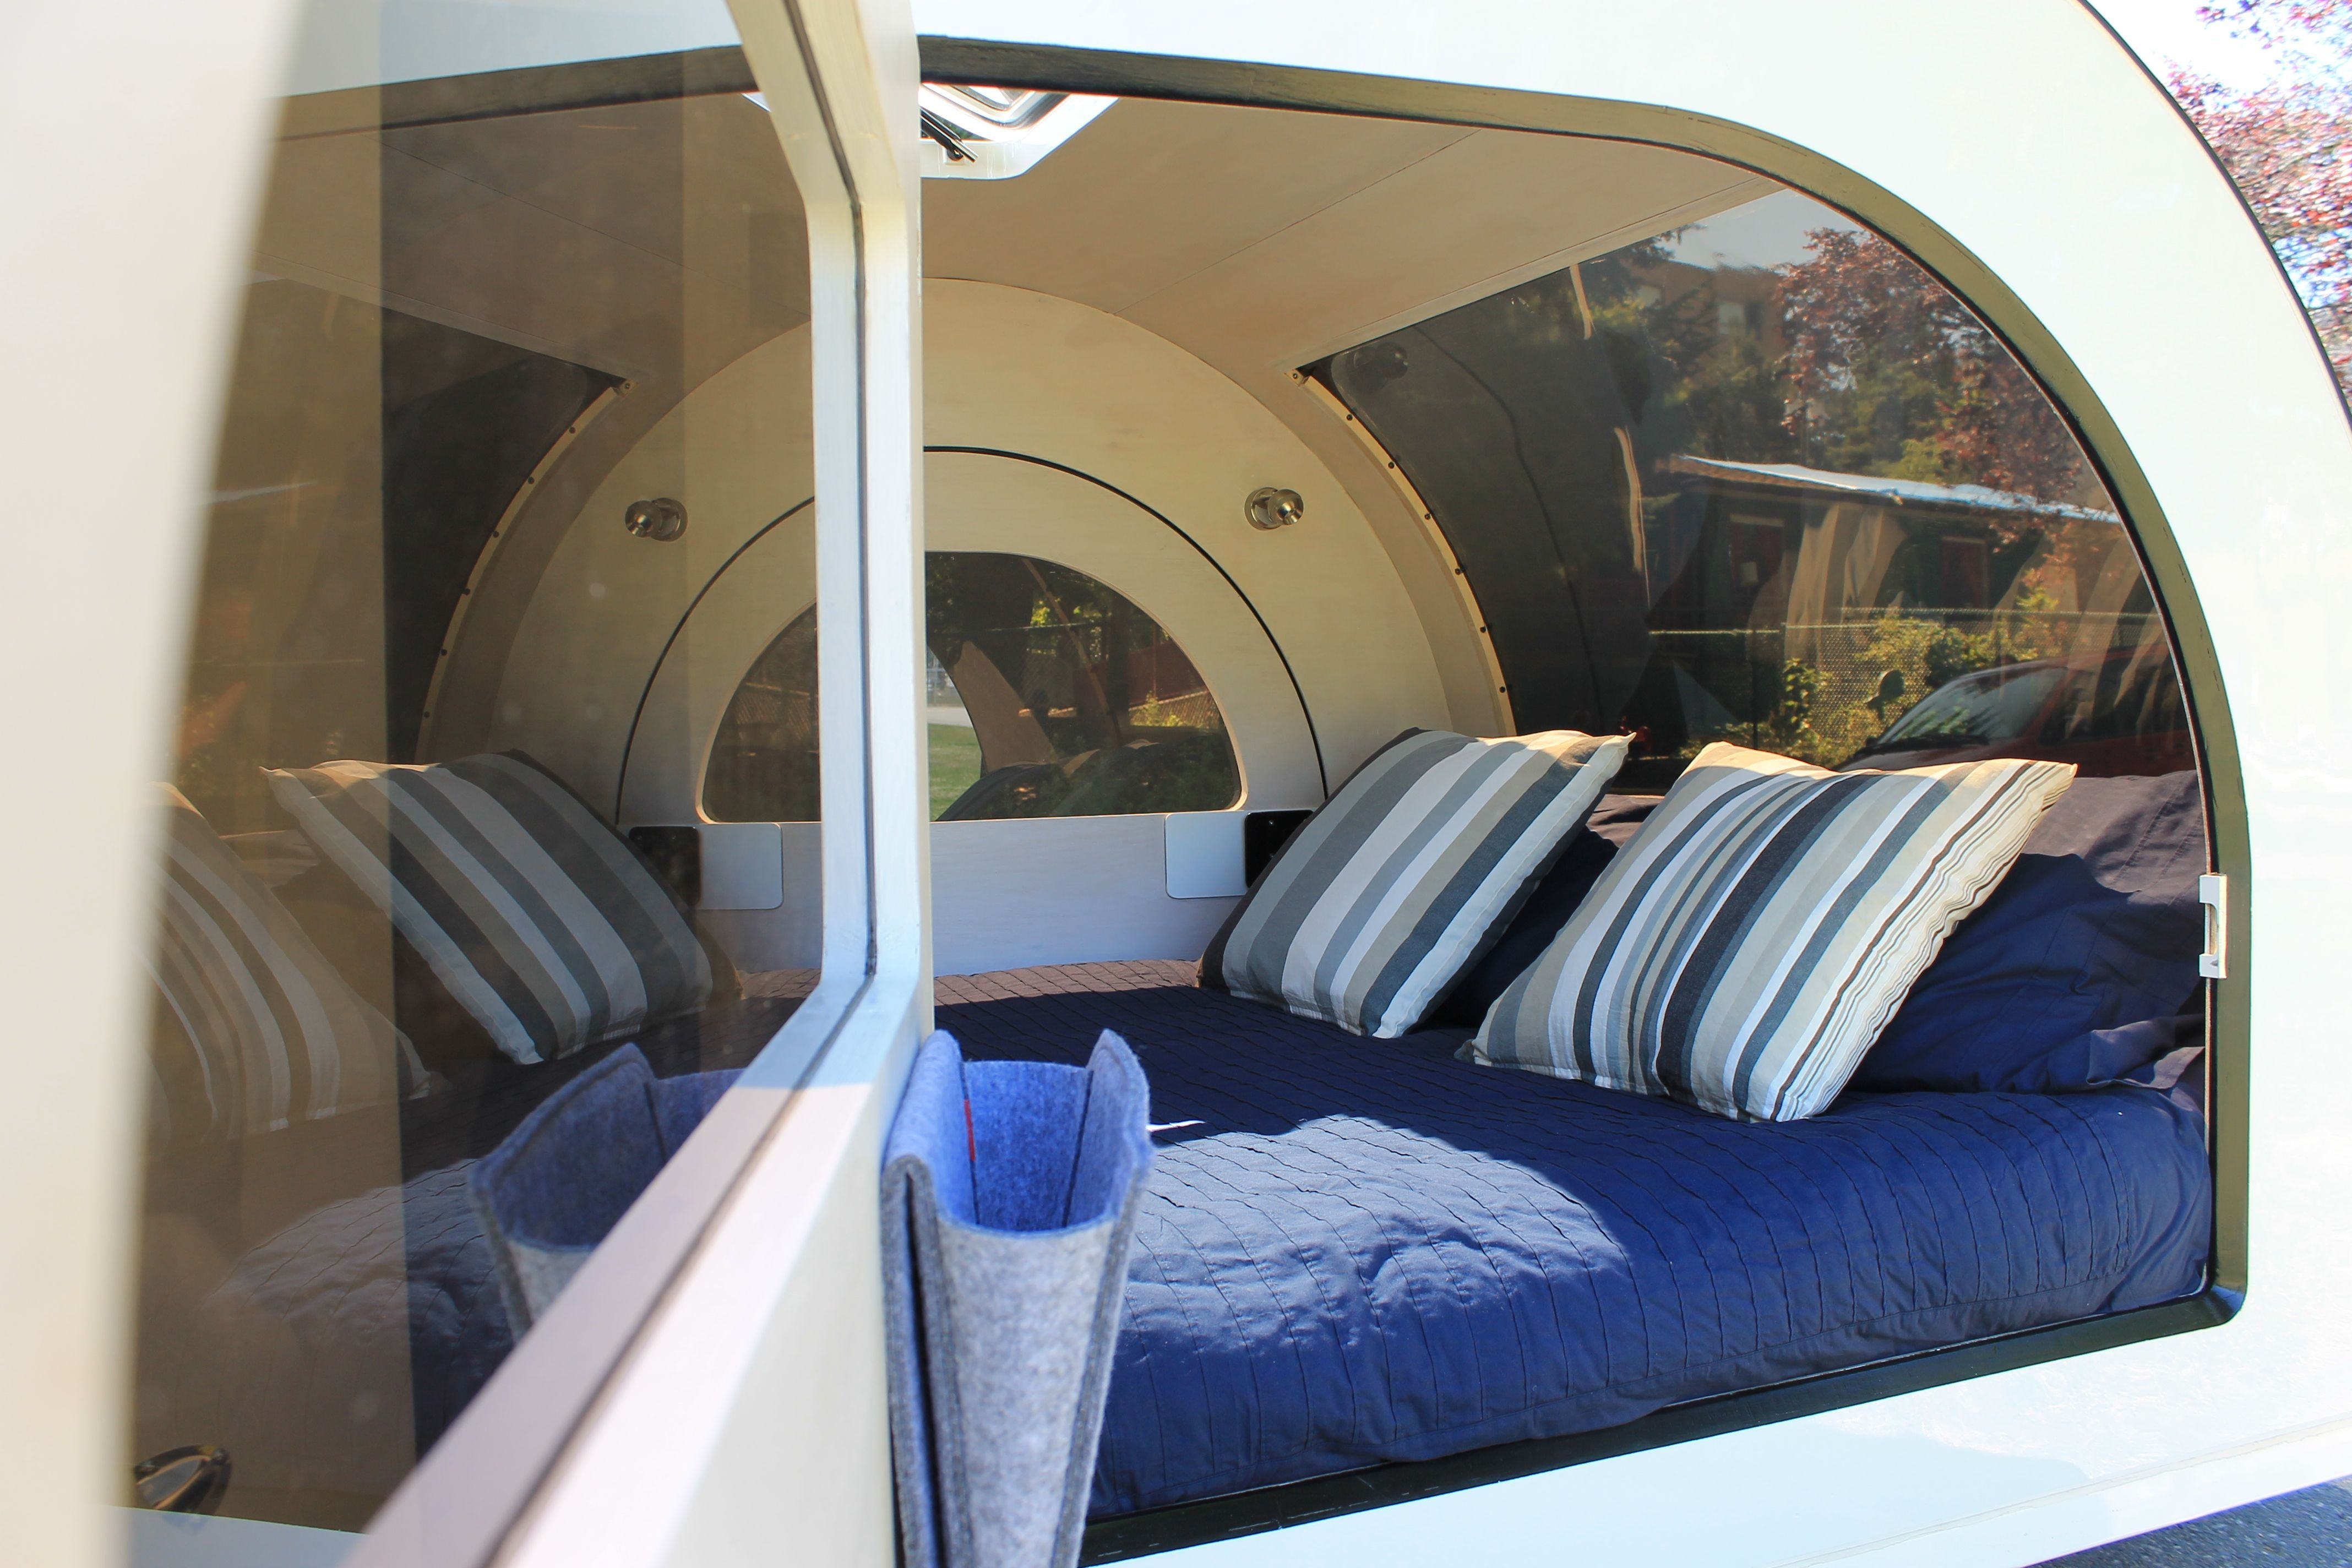 DROPLET warm and cozy! DROPLETtrailer LOVECAMPING